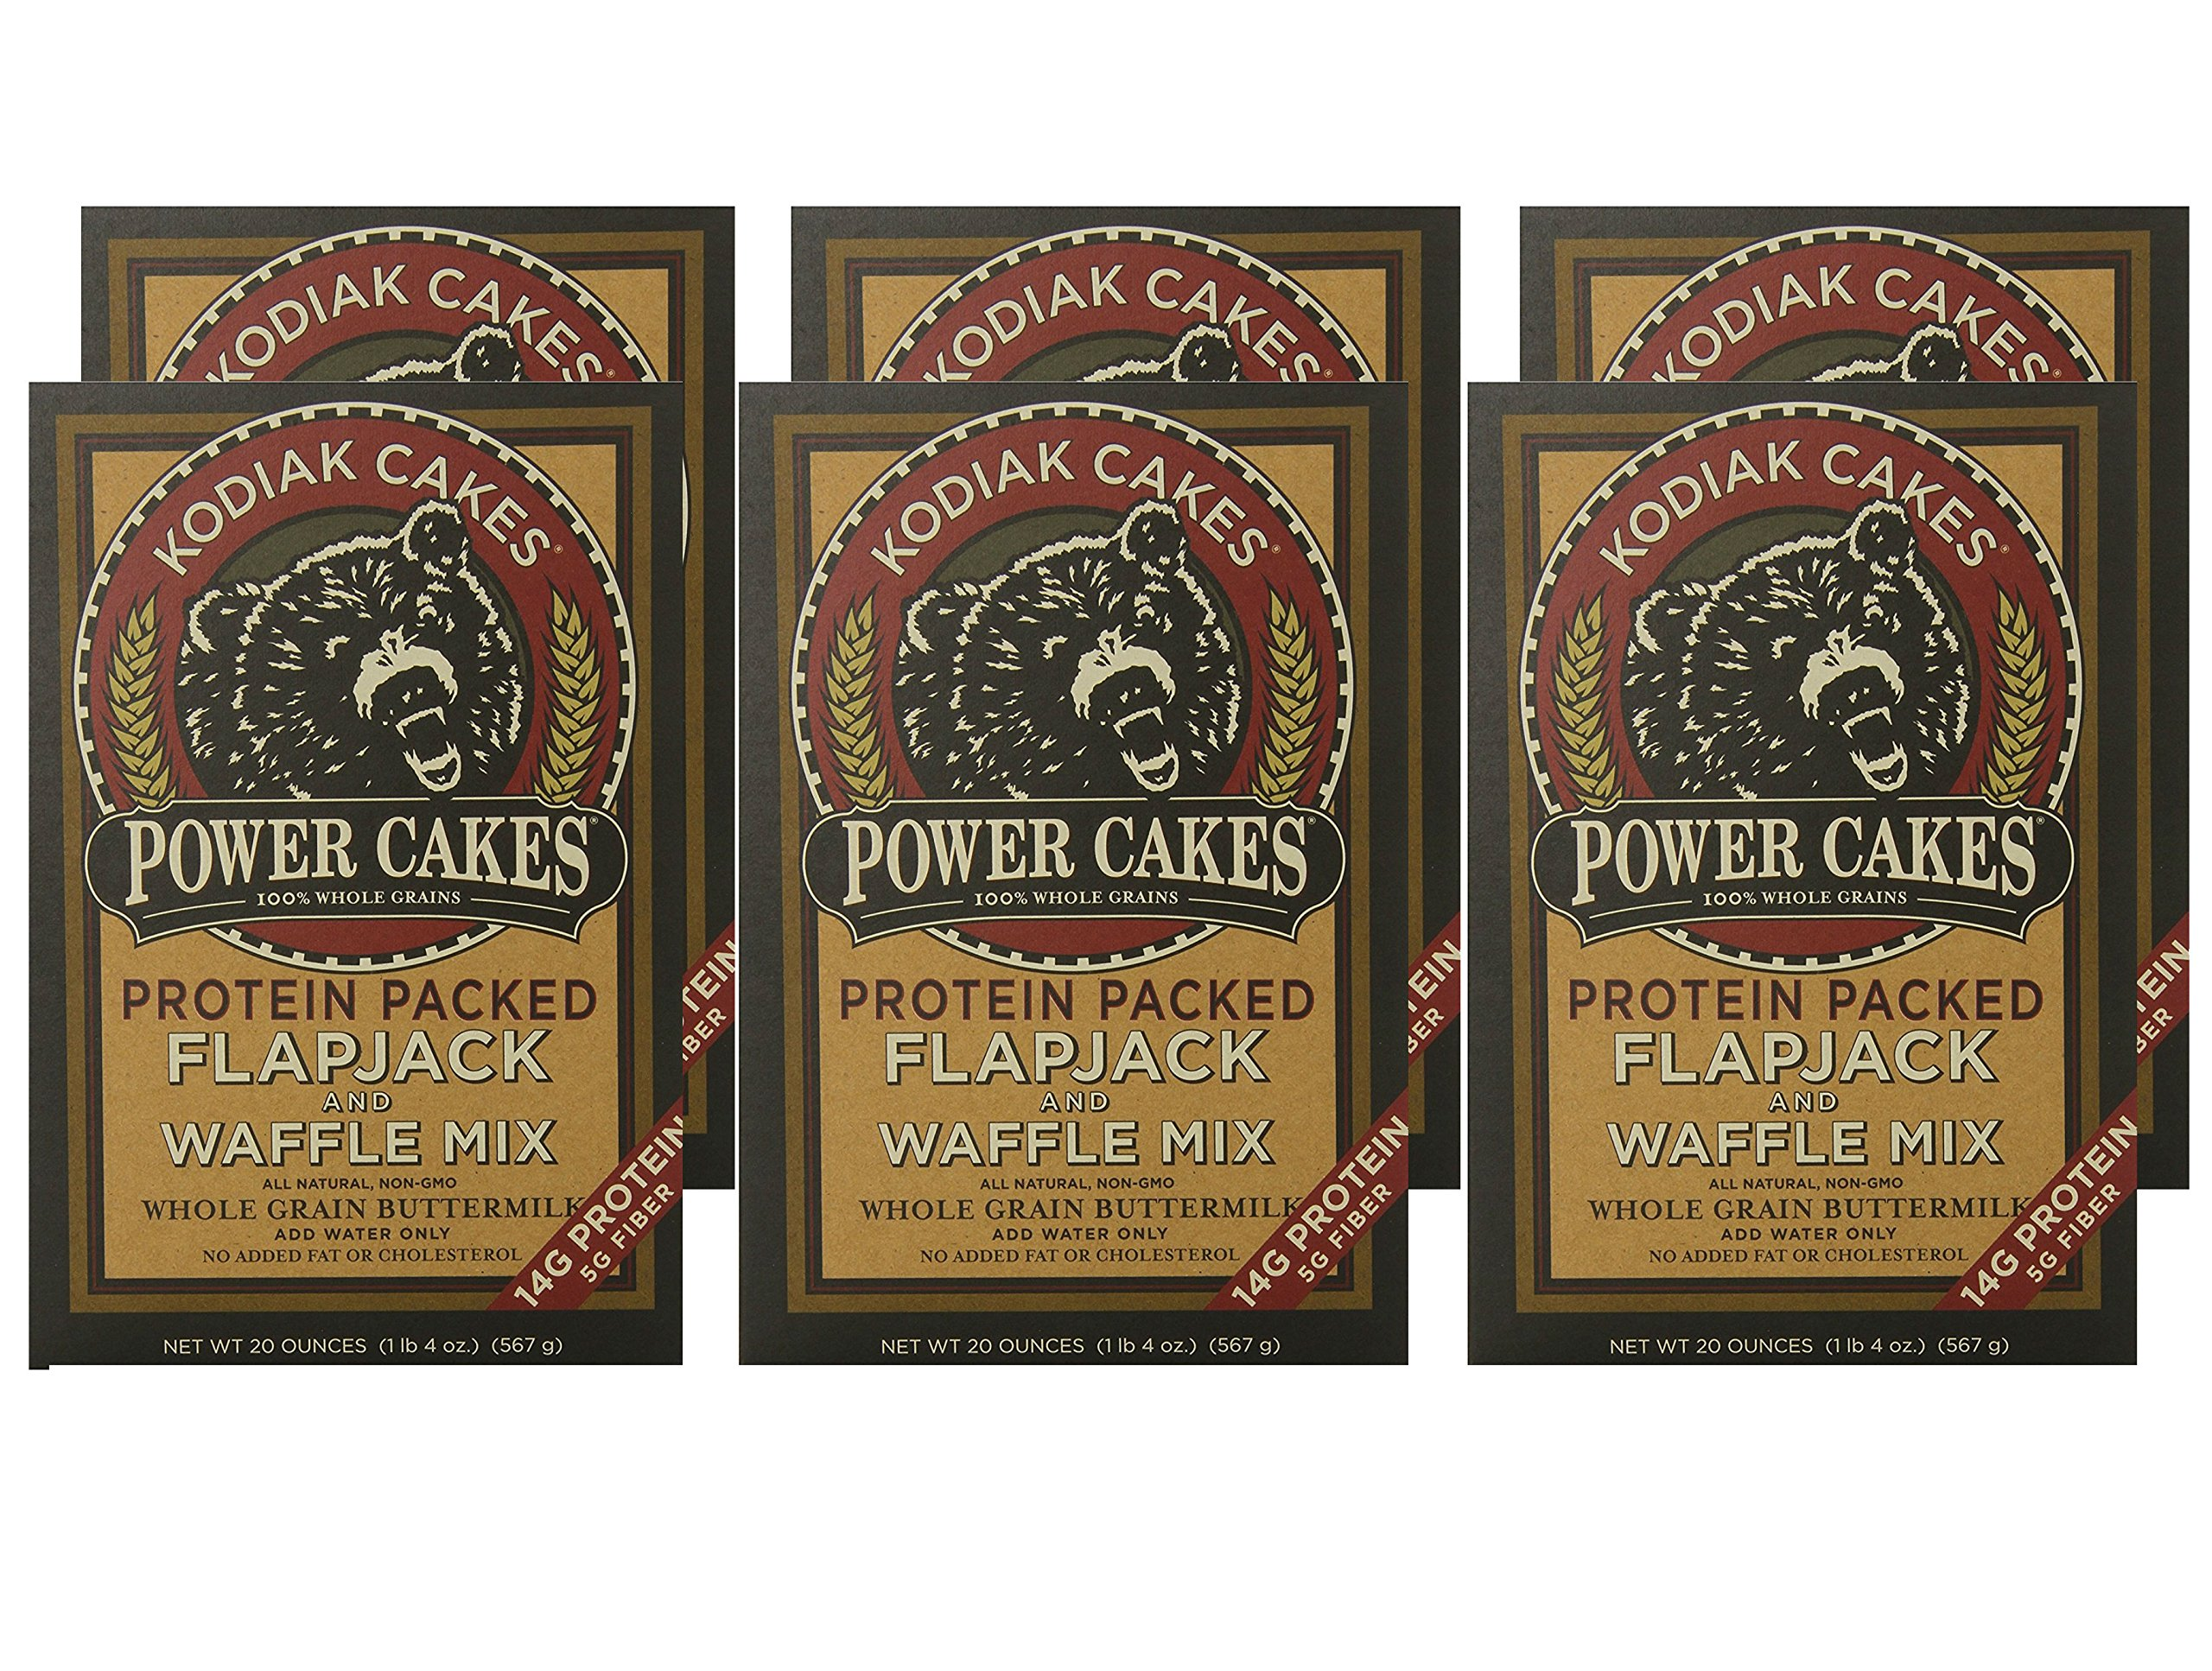 Kodiak Cakes Power Cakes, All Natural, Non GMO Protein Pancake, Flapjack and Waffle Mix, Buttermilk, 20 Ounce (Pack of 6)